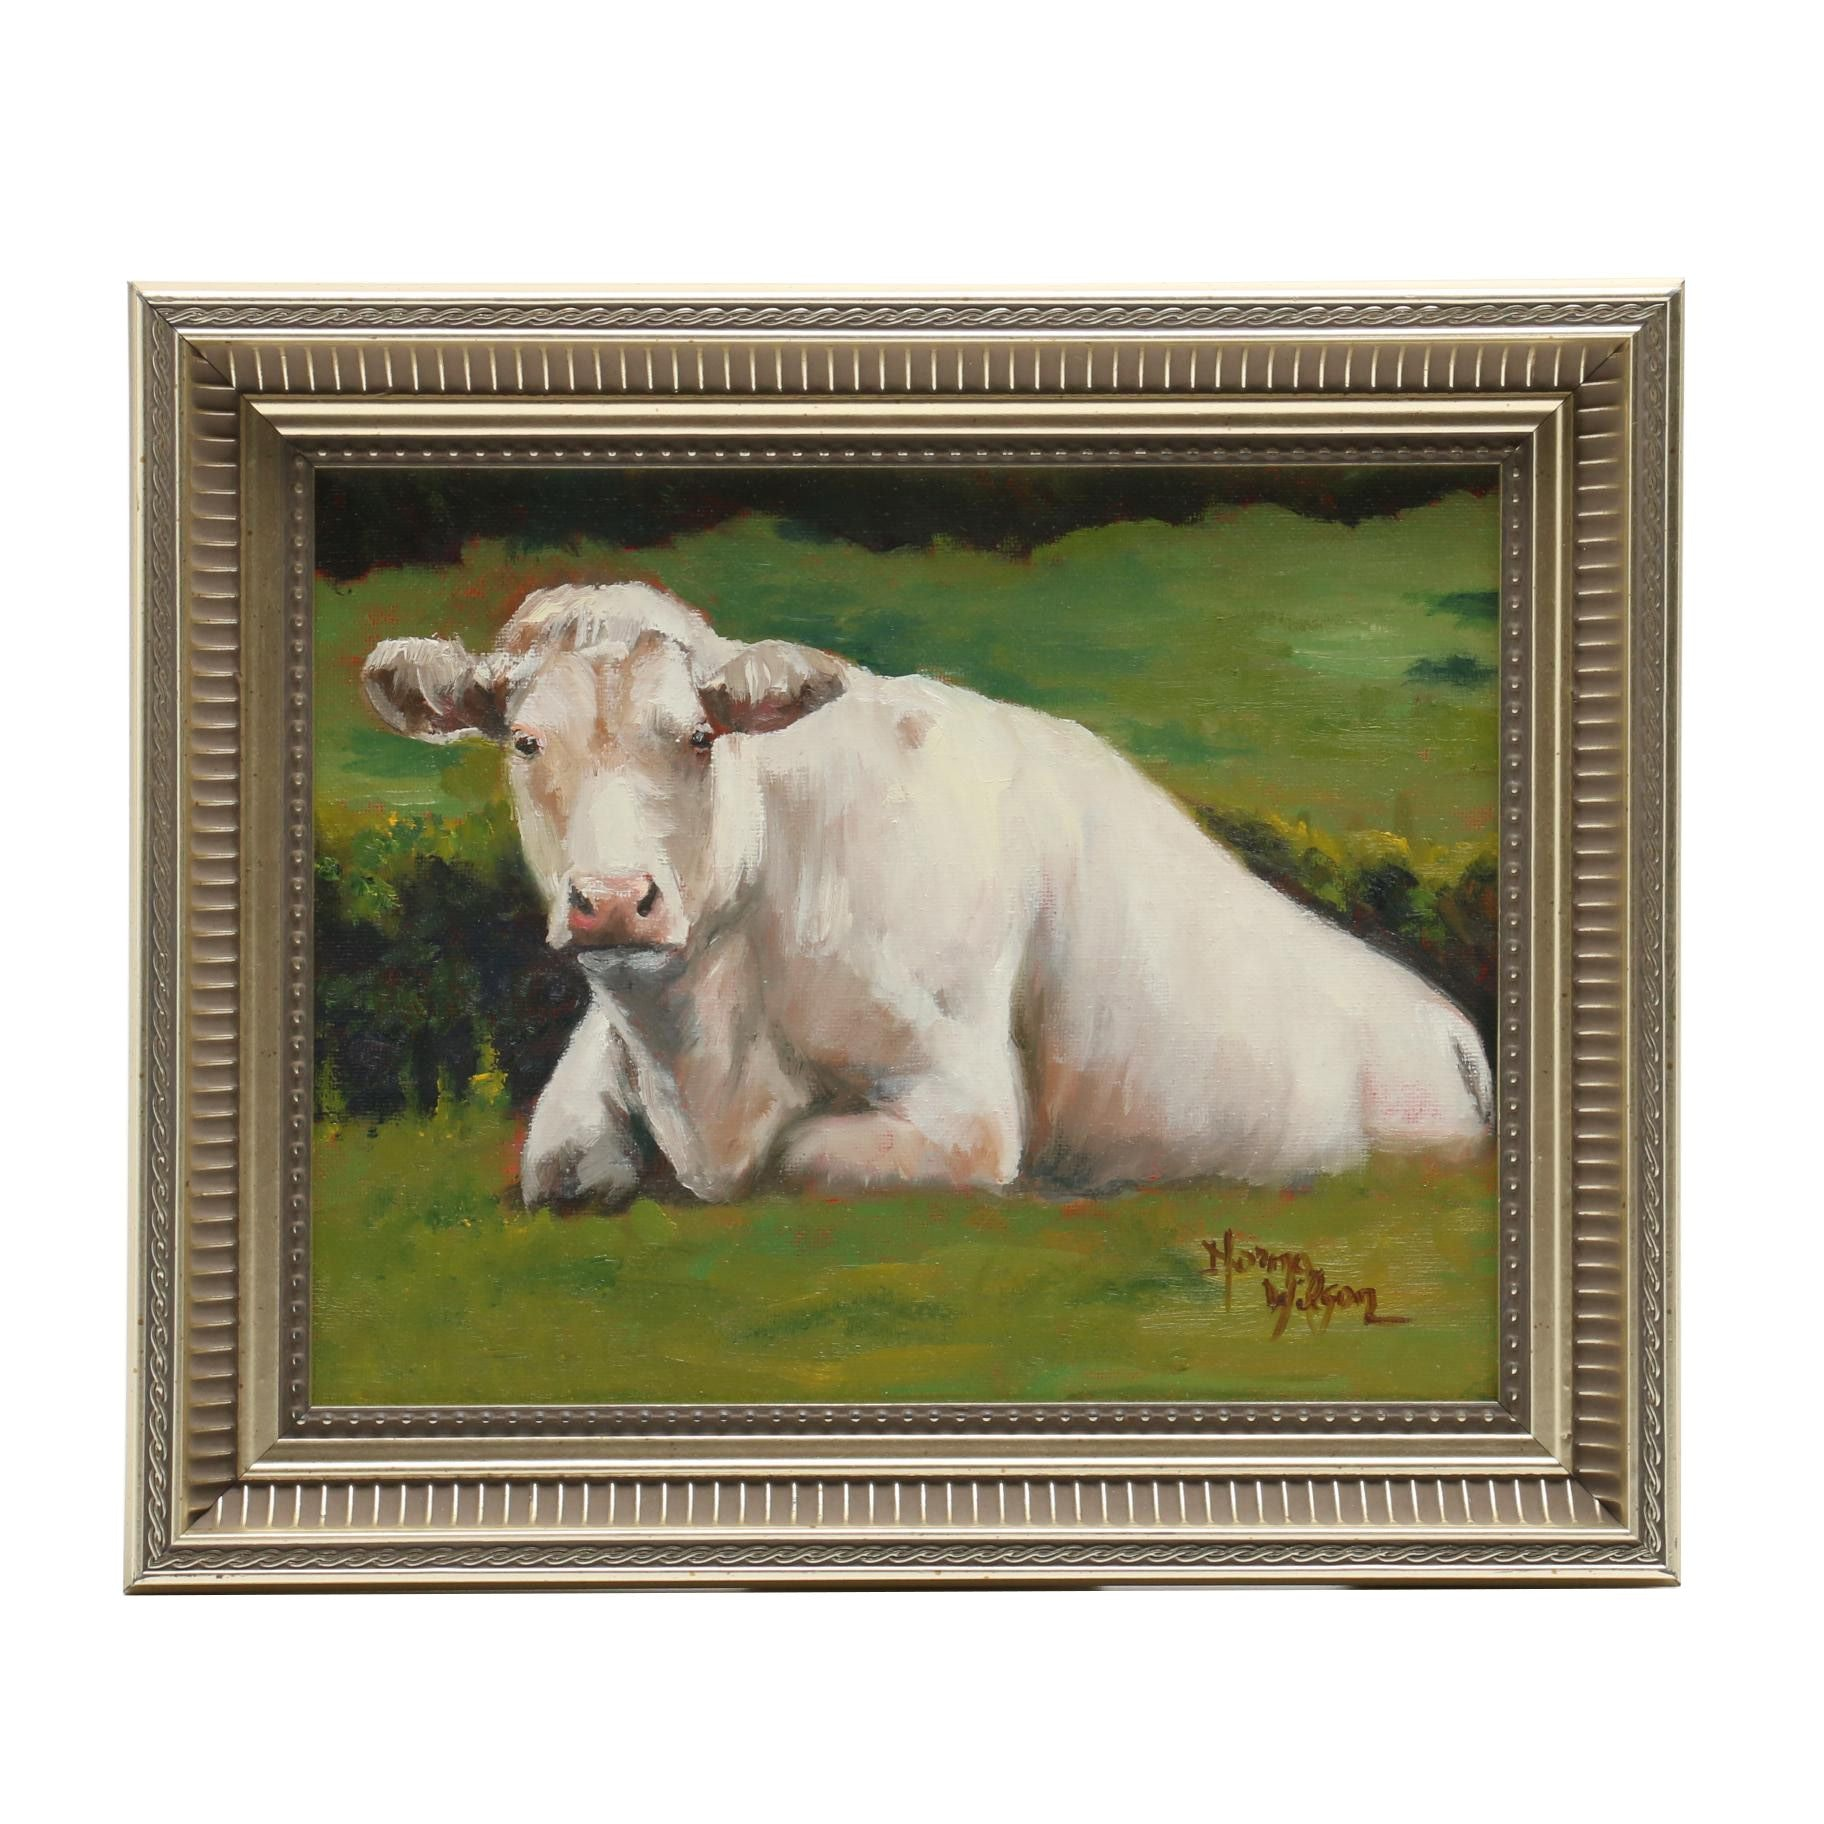 Norma Wilson Oil Painting of a Cow